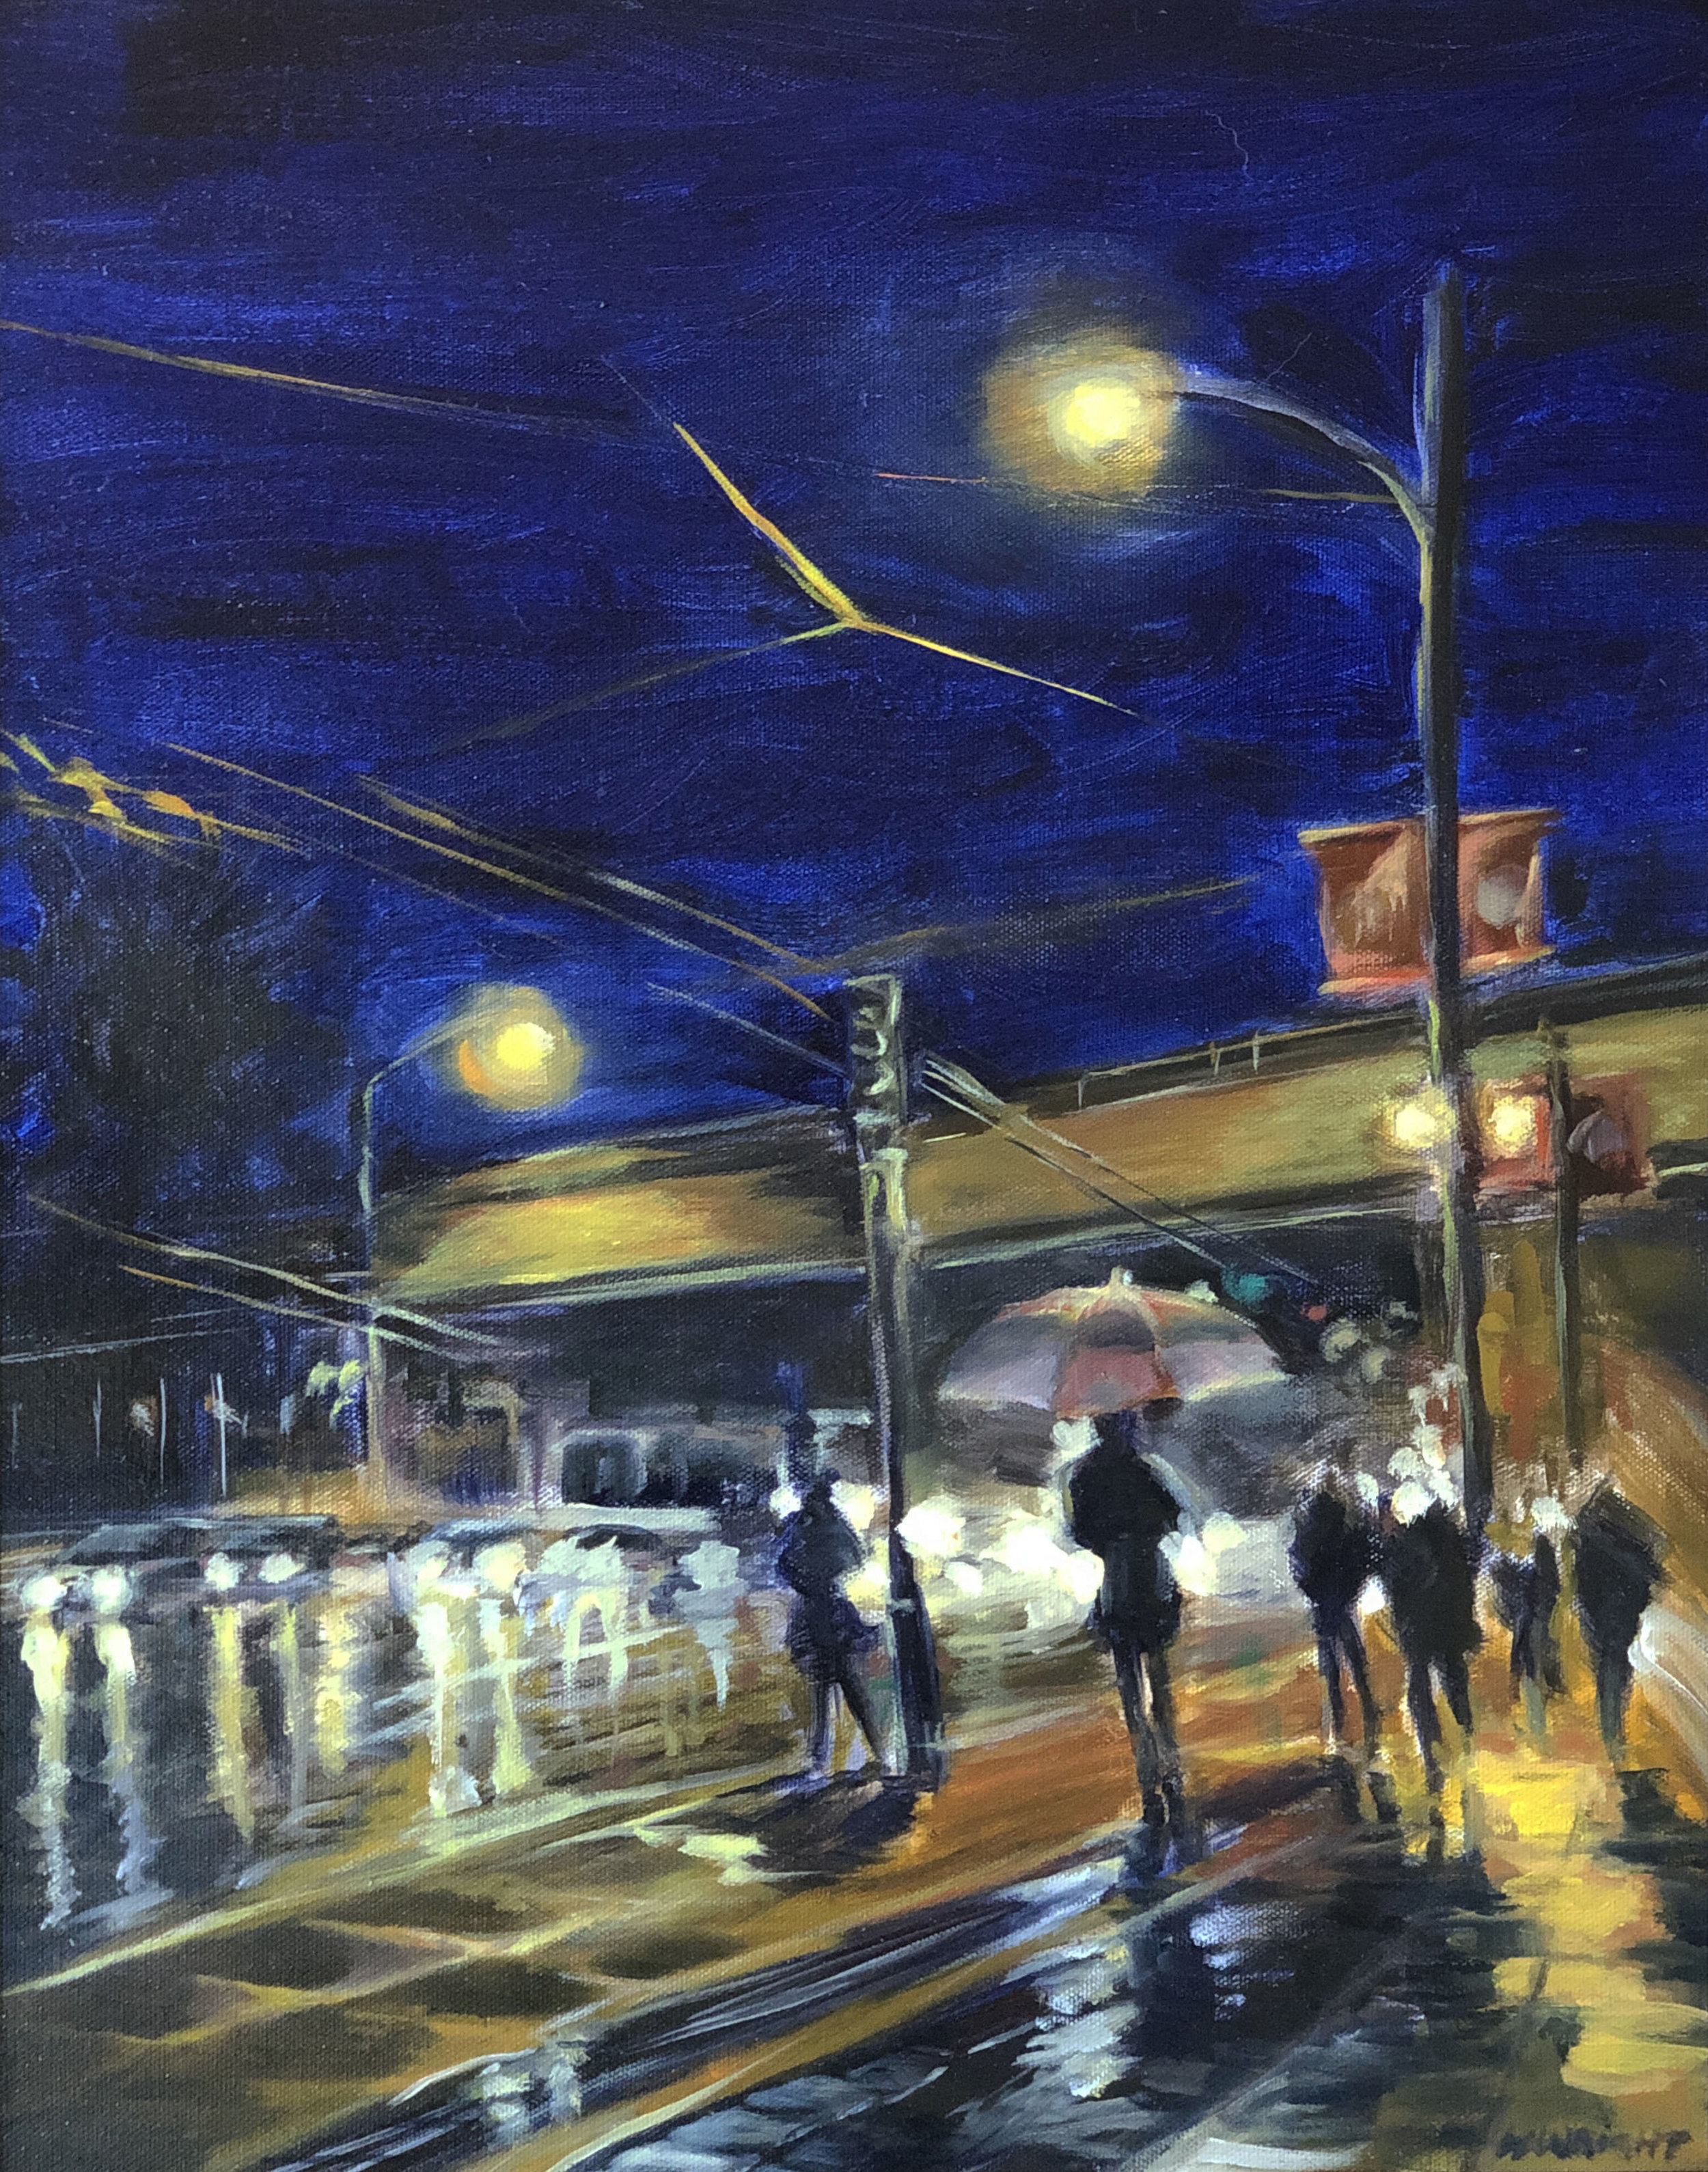 WRIGHT_Rainy Night on Commercial Drive (oil_canvas) 15x20.jpg